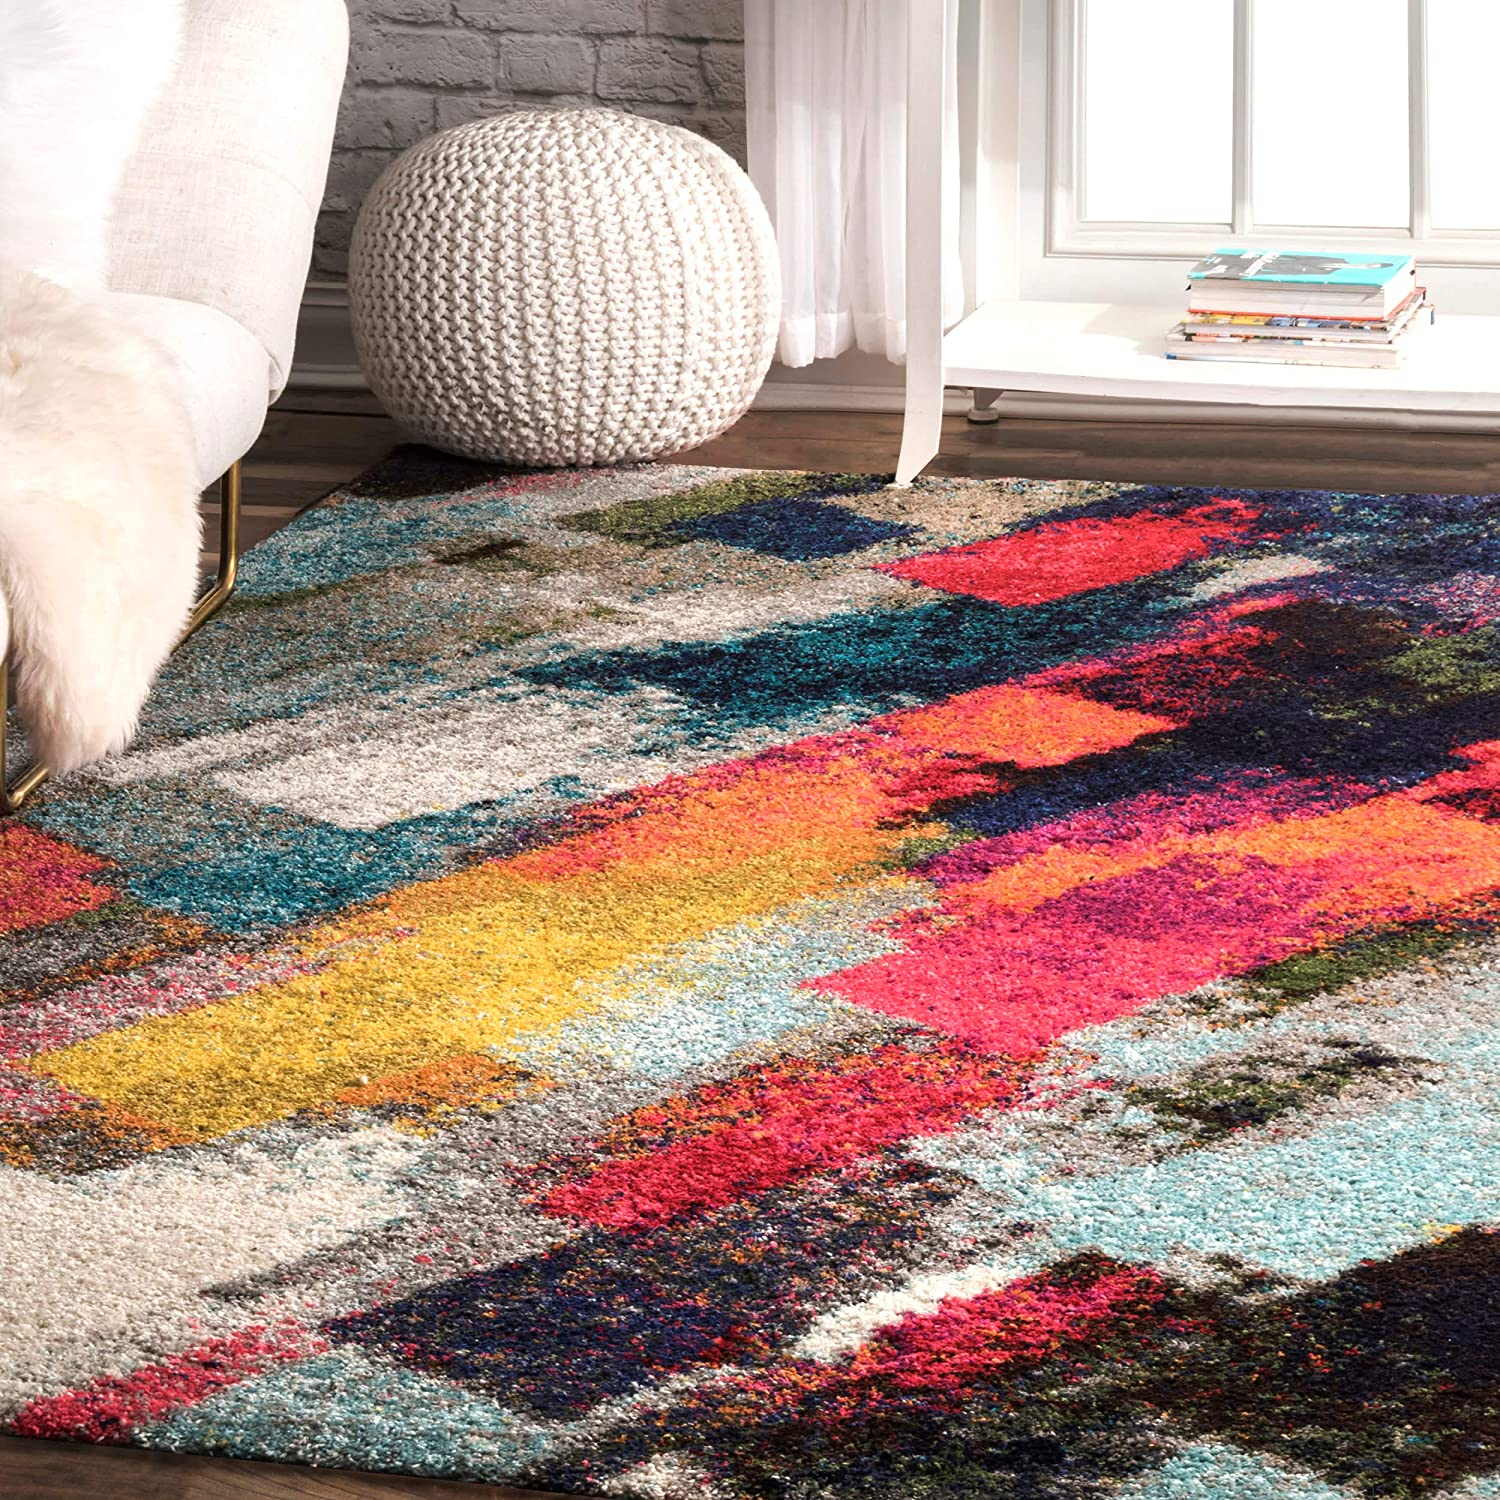 nuLOOM Paisley Bohemian Abstract Shag Area Multi 10' 8' Challenge the lowest price of Albuquerque Mall Japan x Rug